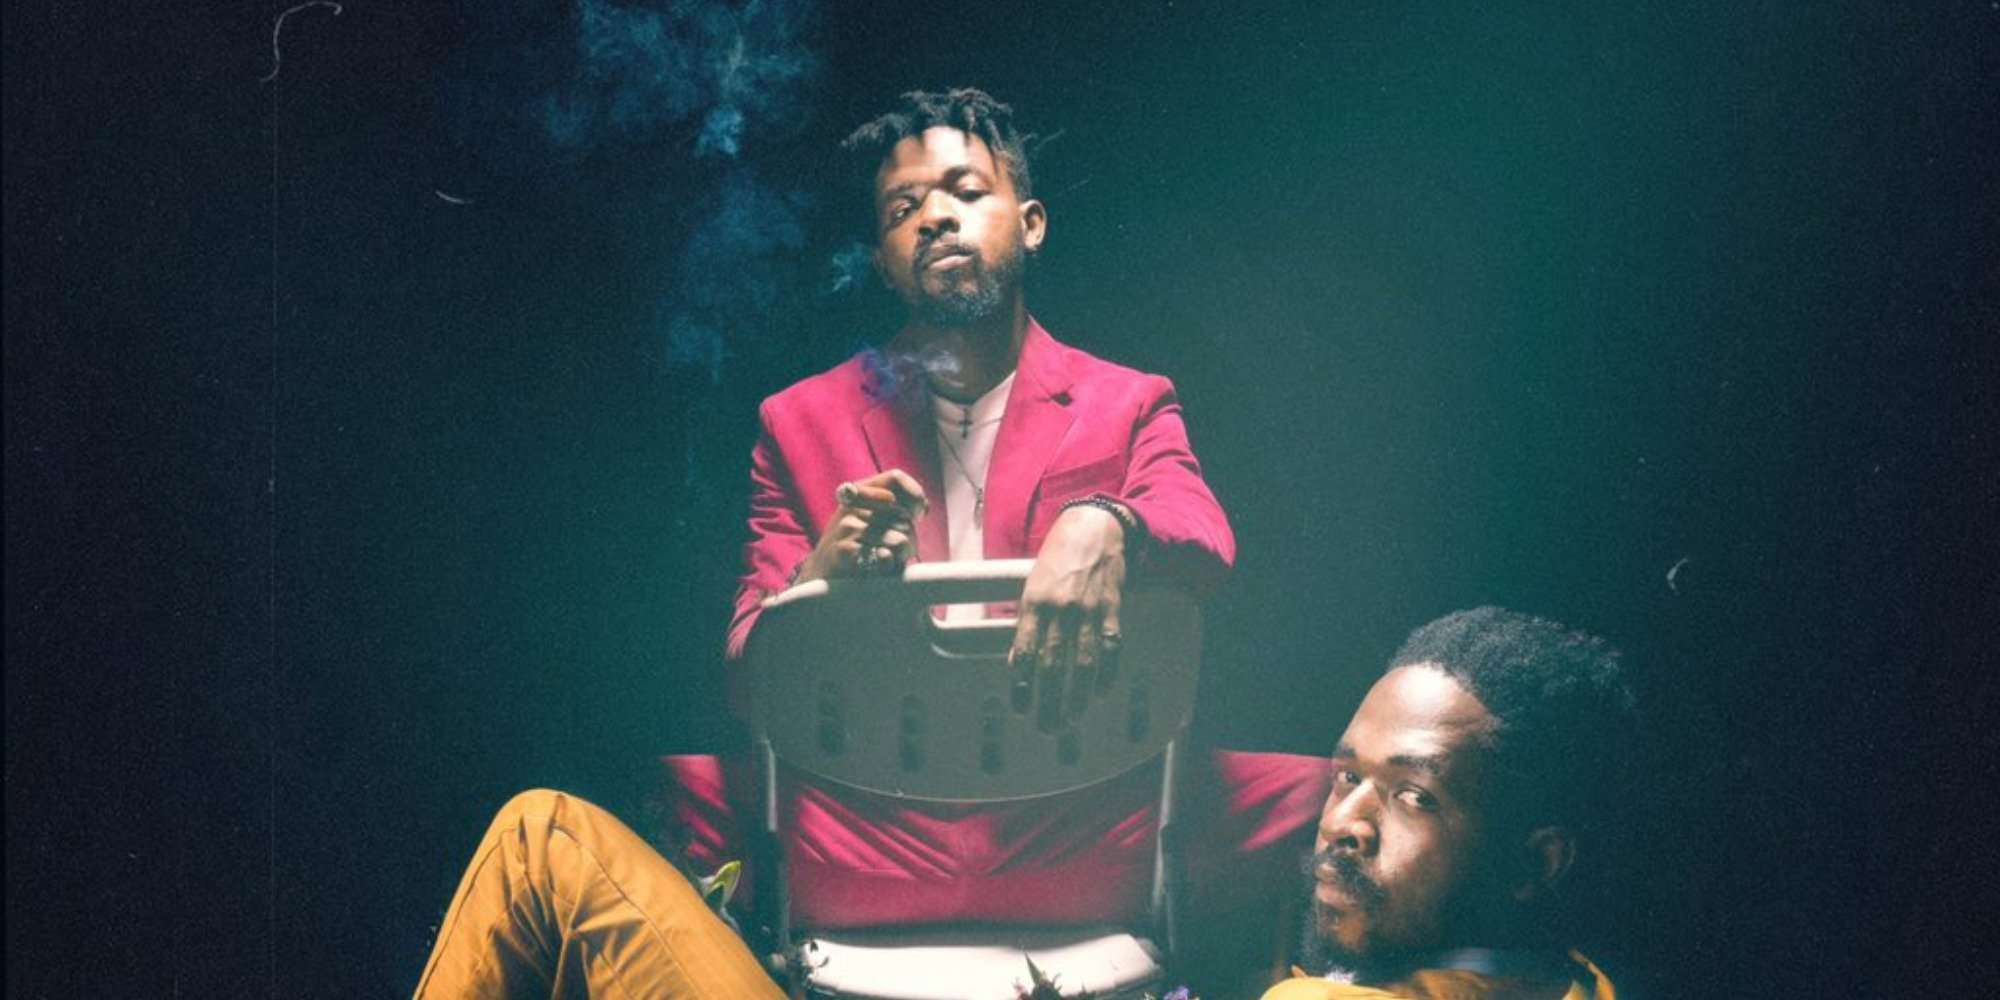 4 Takeaways from Johnny Drille's Debut Album 'Before We Fall Asleep'